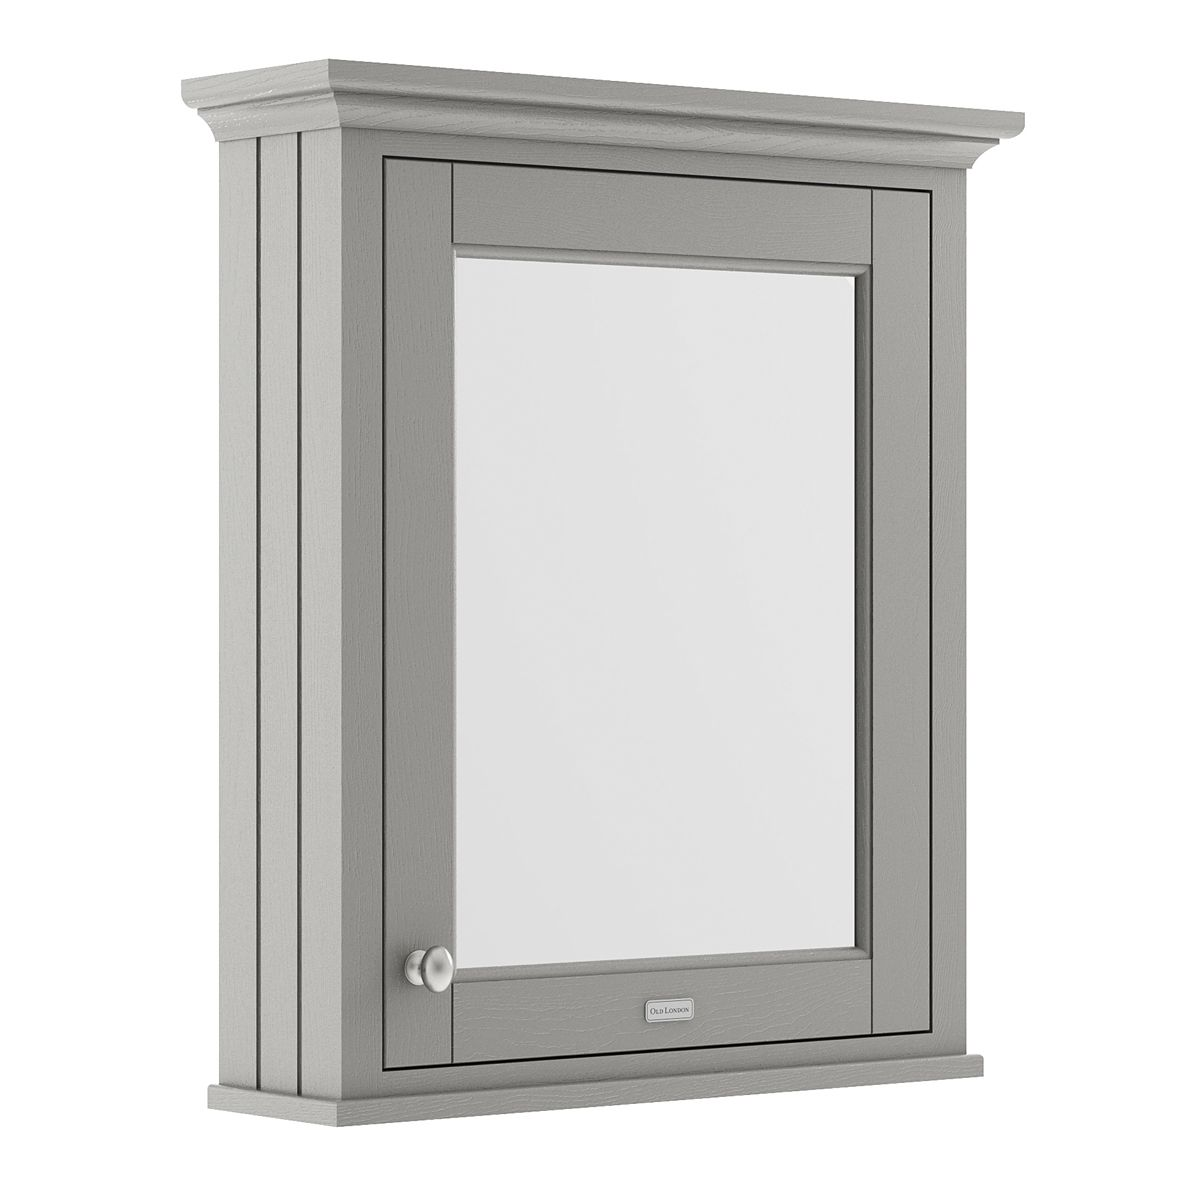 Old London Storm Grey Mirror Cabinet 600mm